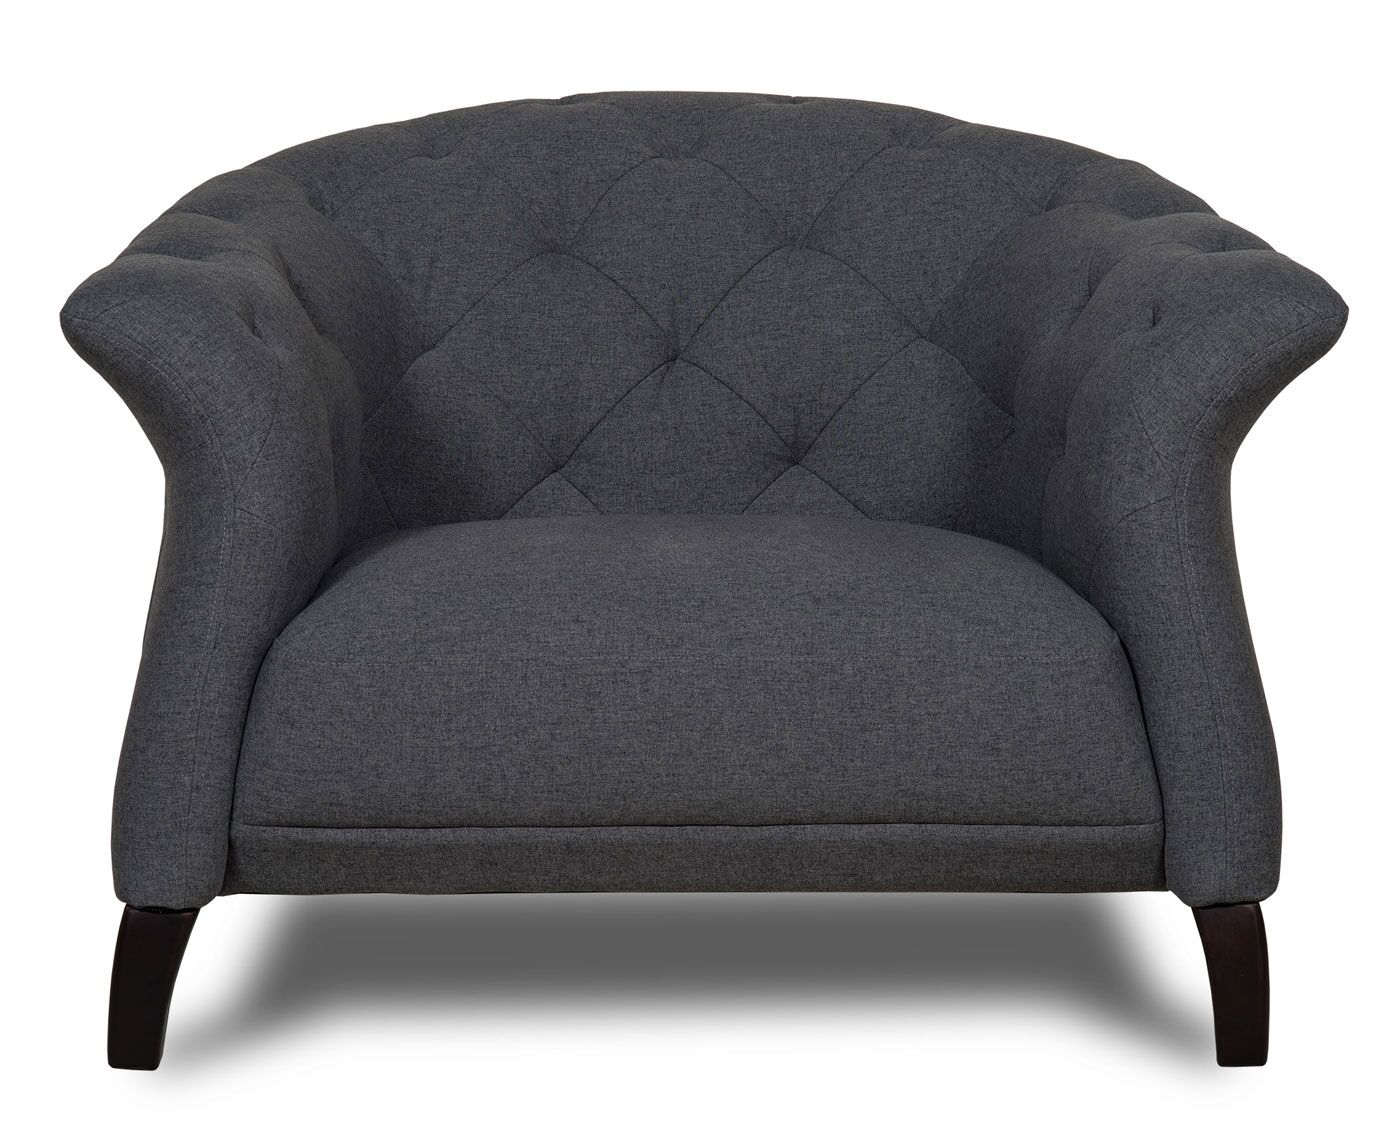 Crispin Armchair Dark Grey The Natural Furniture Company Ltd